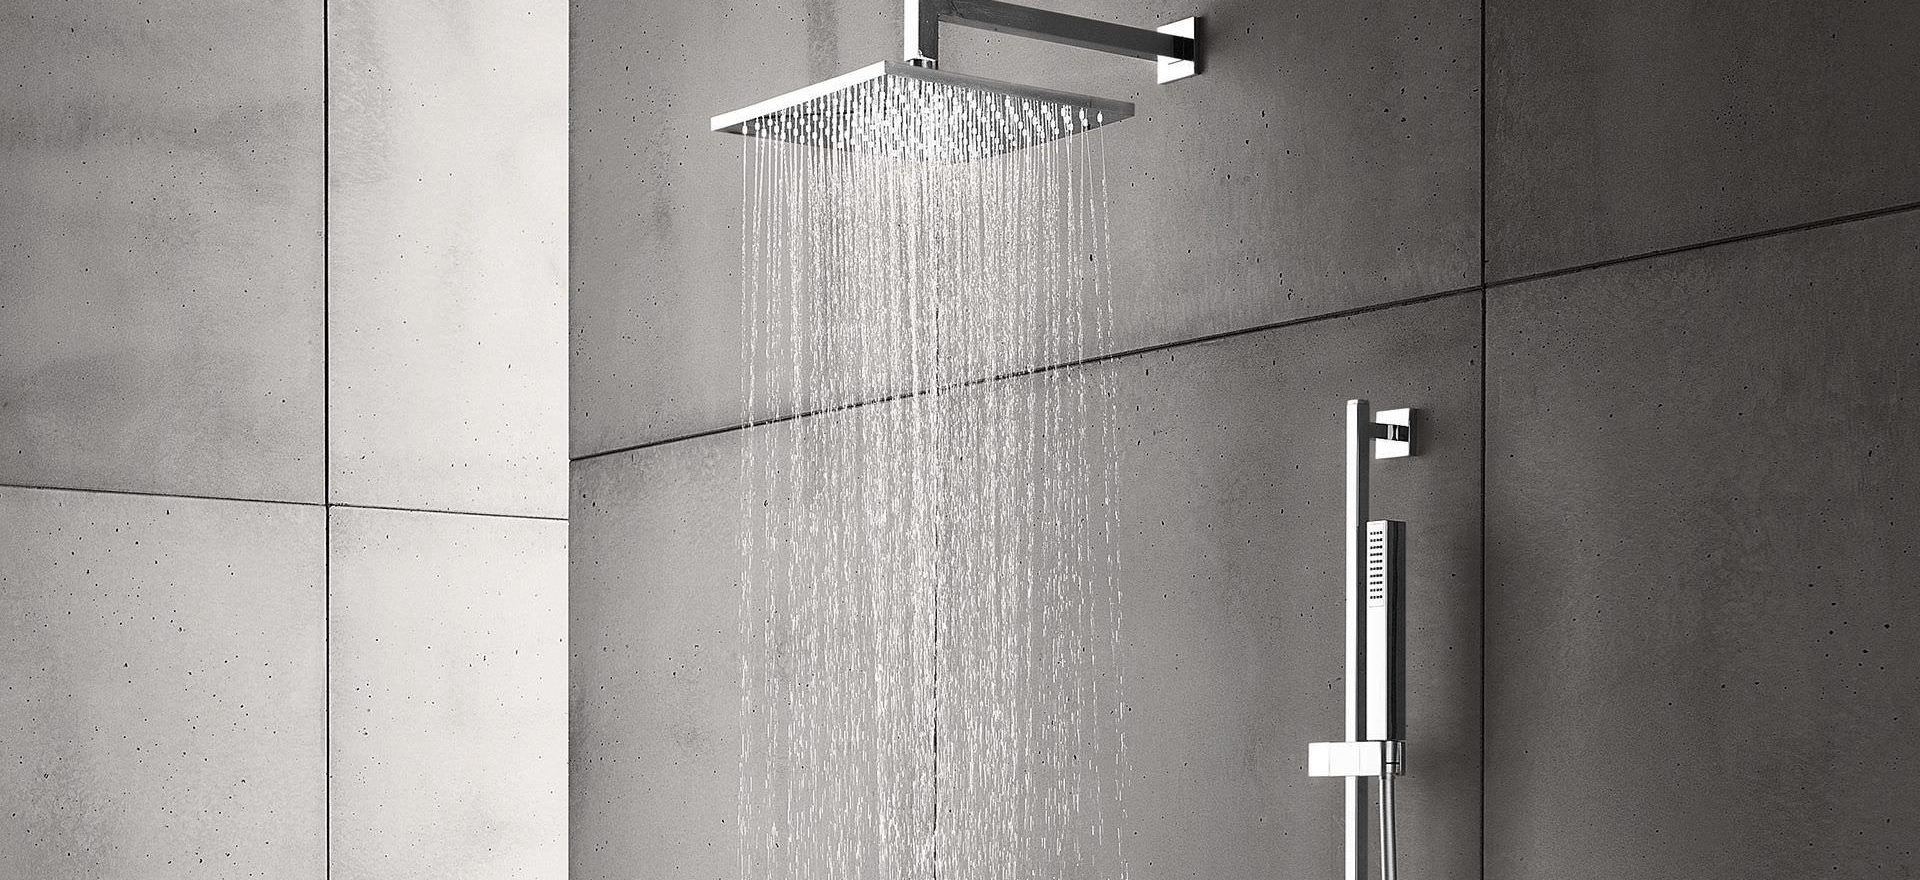 Ceiling Mounted Shower Head  modern flush mount lighting corner bathroom sink cabinet